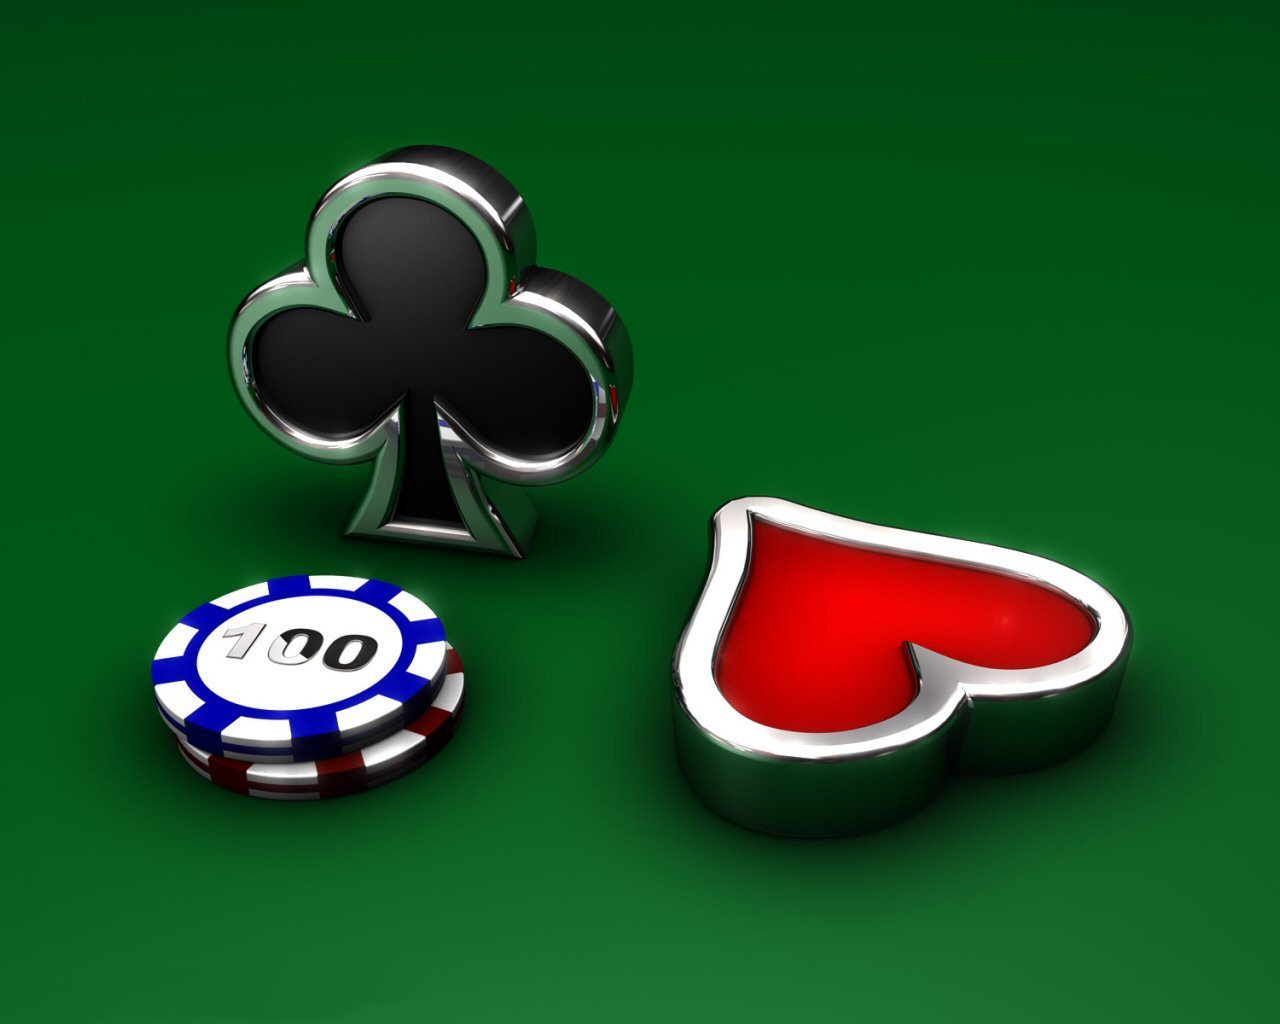 The best tips to win at poker online